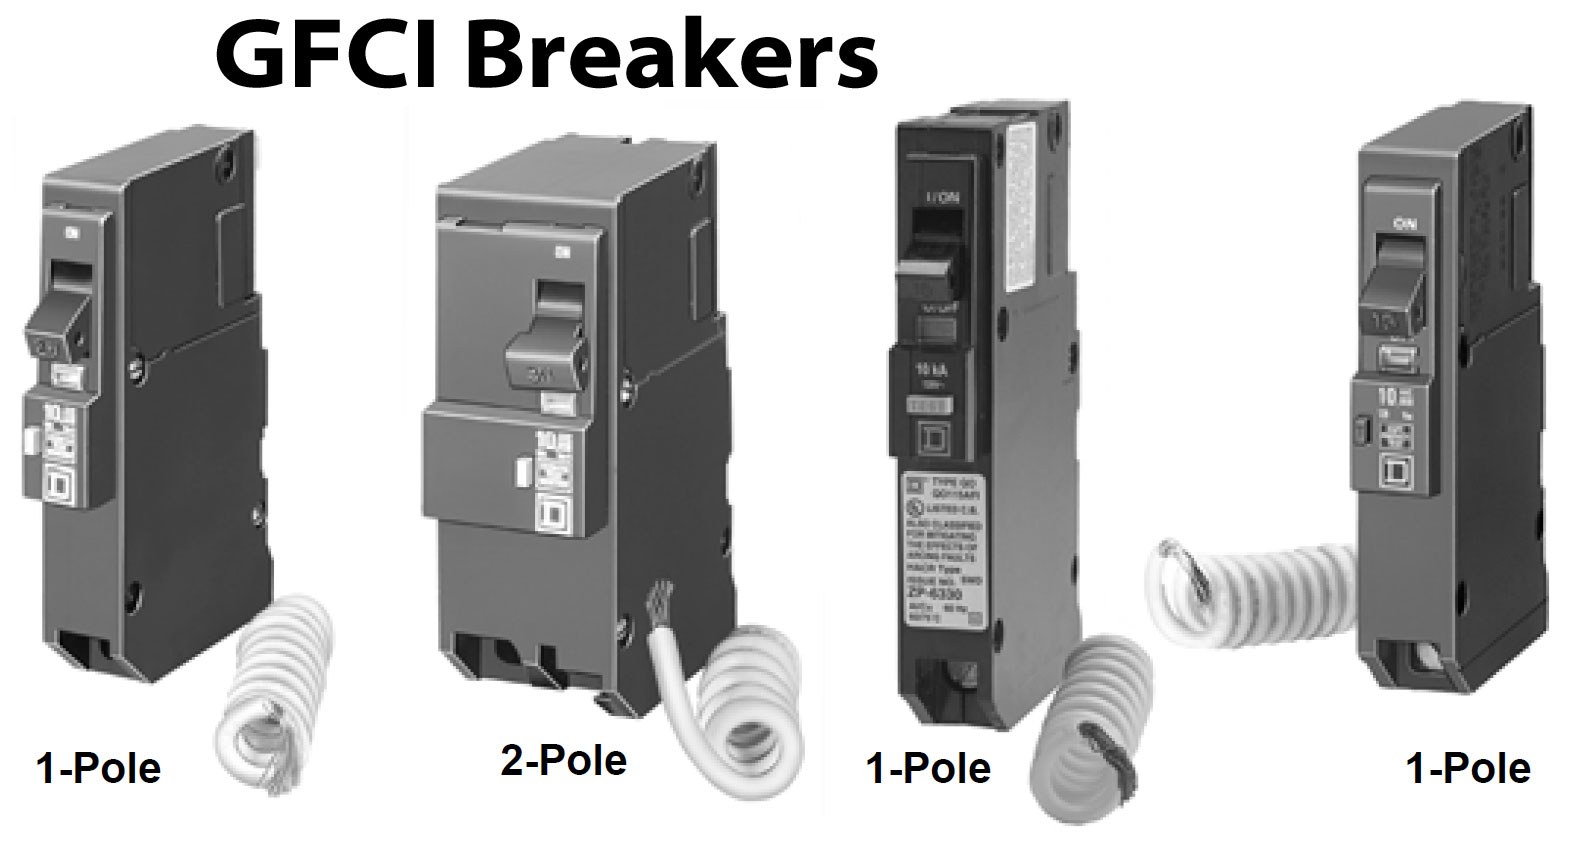 GFCI breakers 1000 how to install and troubleshoot gfci eaton gfci breaker wiring diagram at readyjetset.co